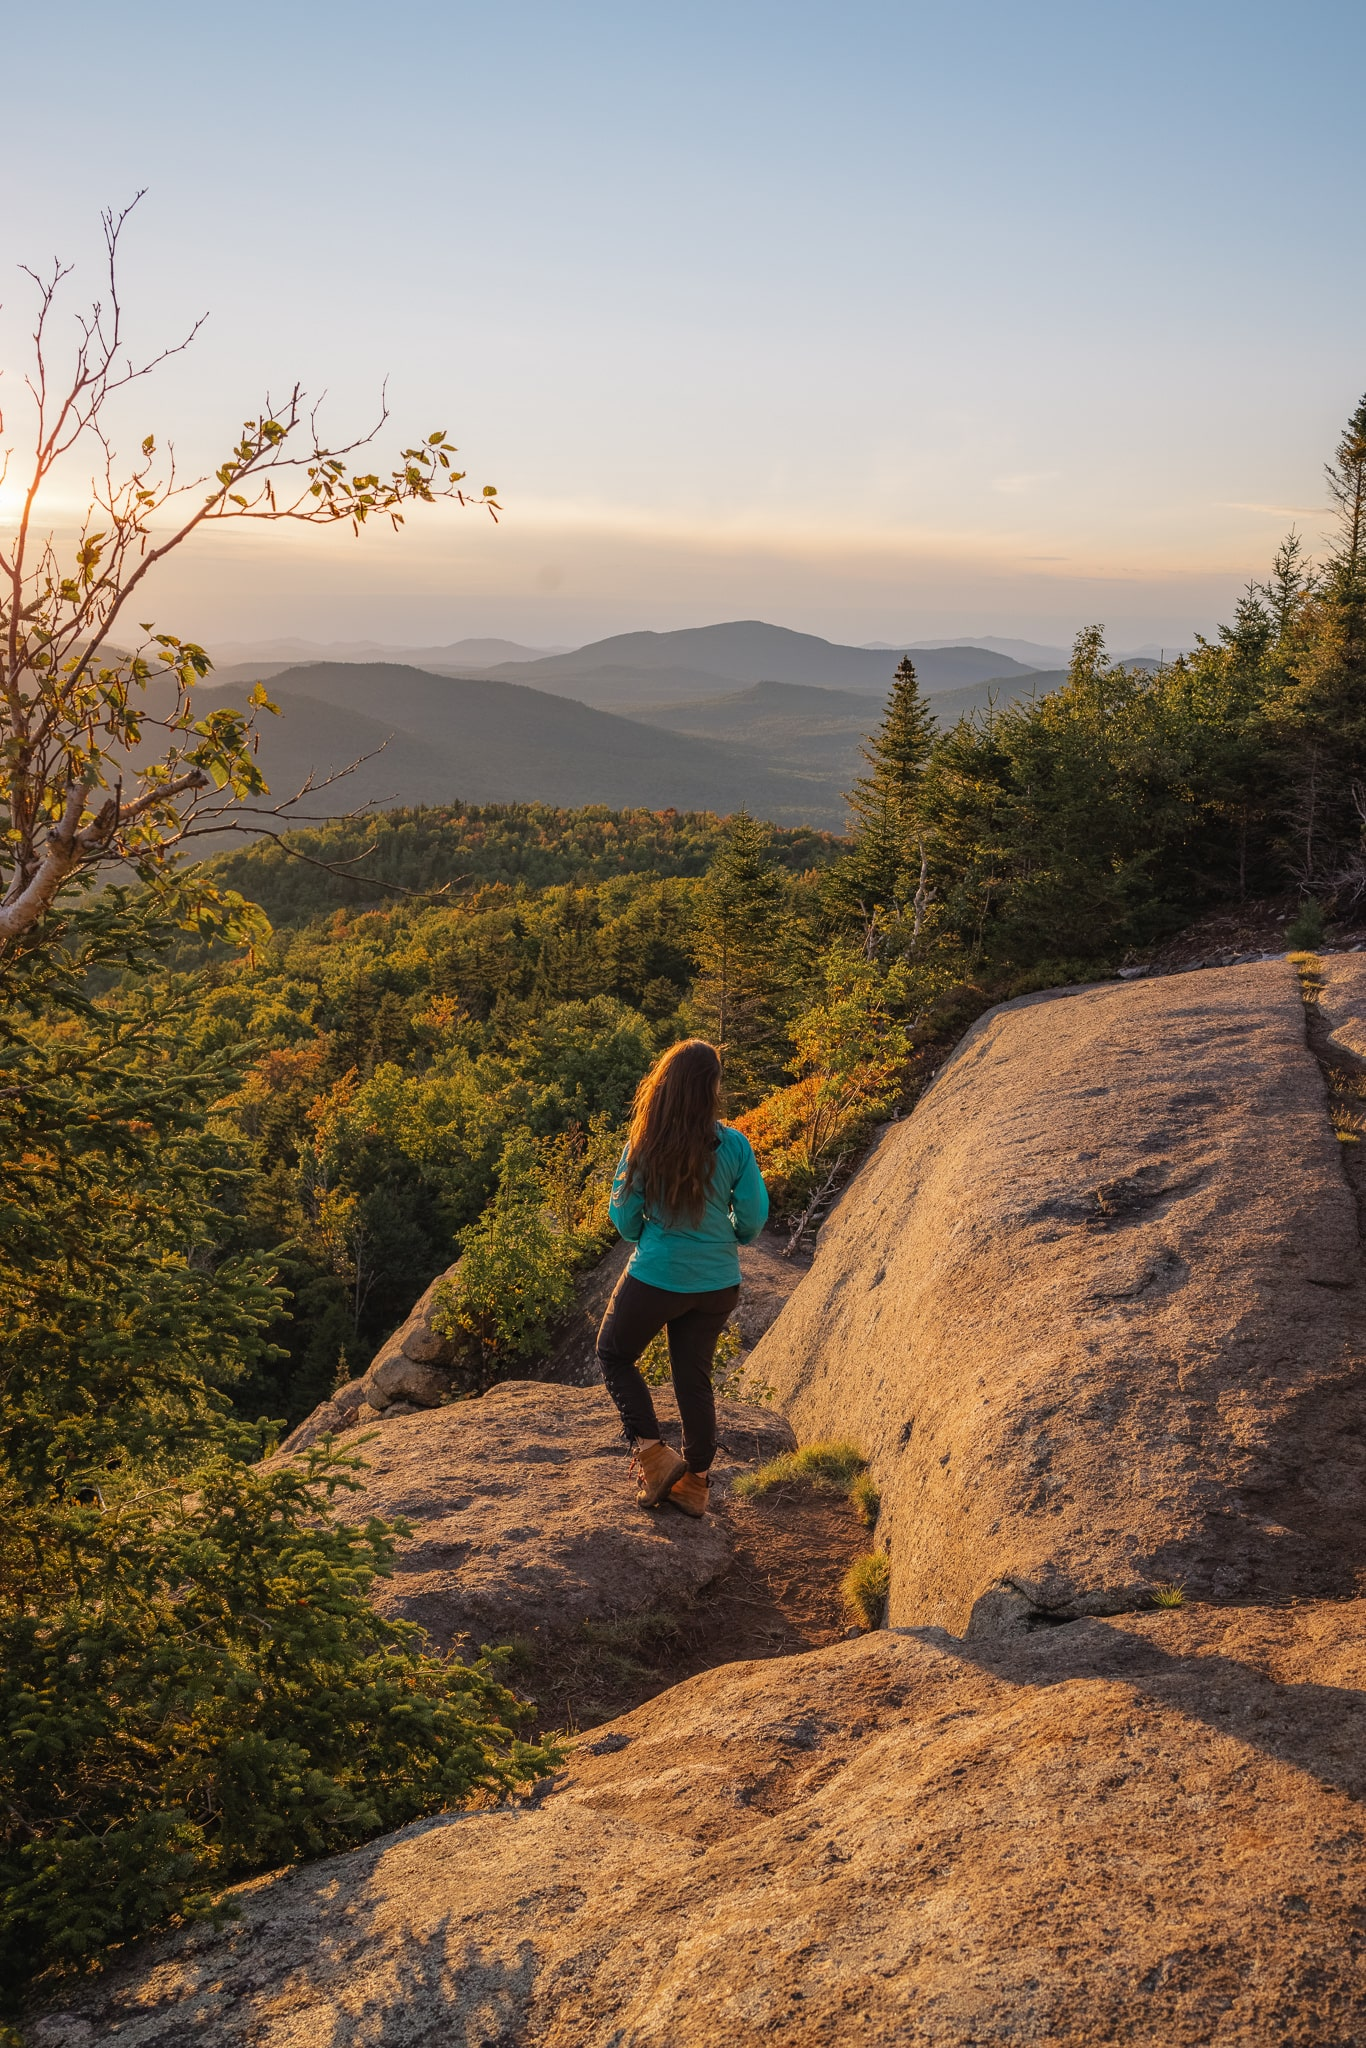 Hiking is one of the best things to do at Mount Van Hoevenberg